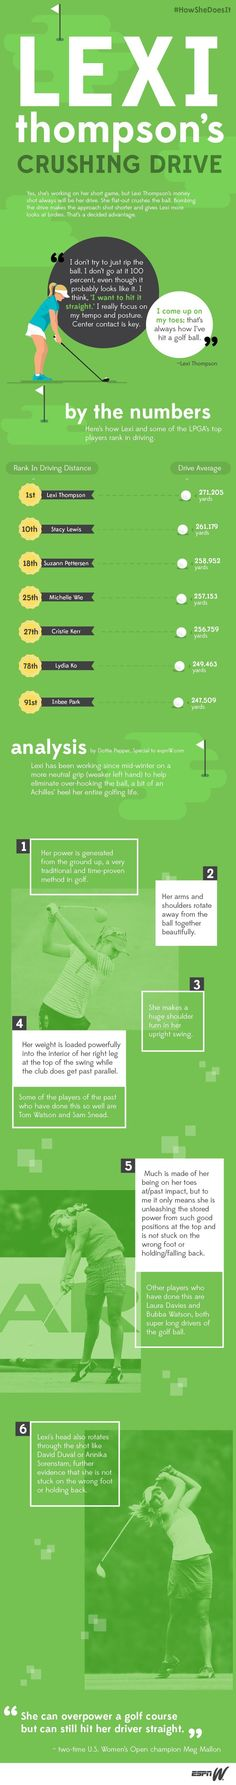 Learn about Lexi Thompson's crushing drive. Re-pinned by www.apebrushes.com. GREENS BRUSHES THAT REALLY WORK!